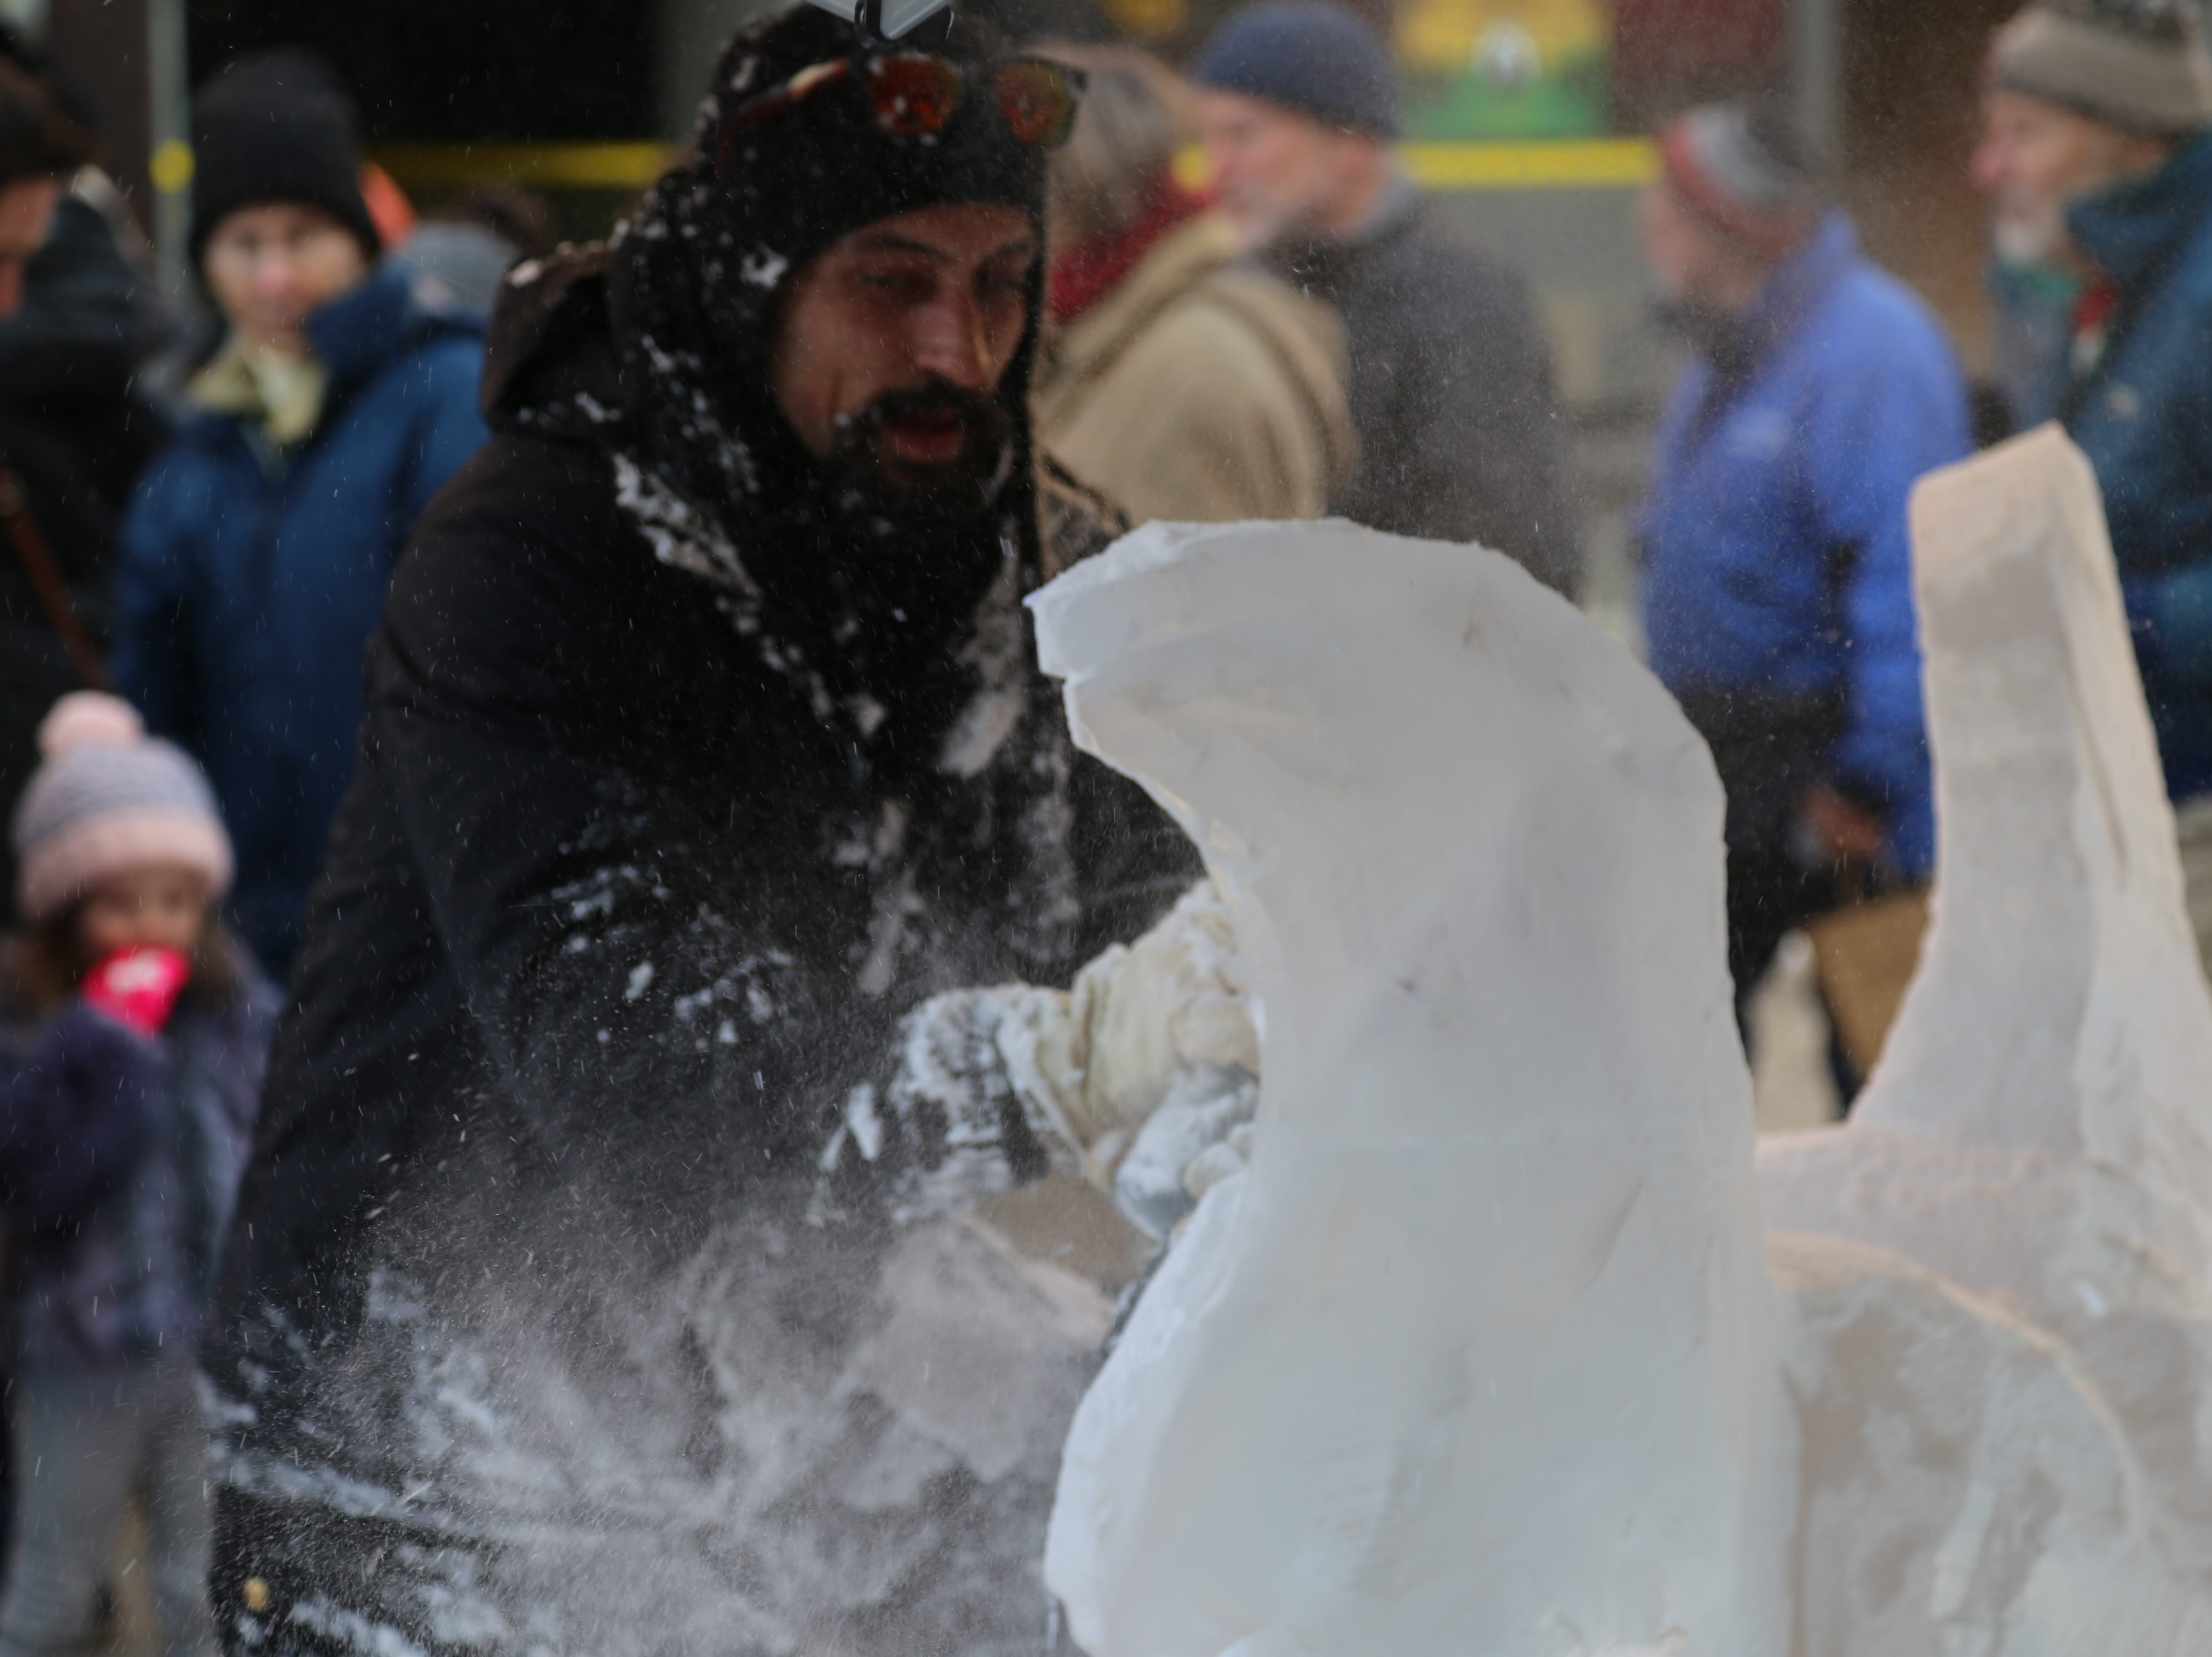 David Smith gets covered in ice as he carves a heart with wings.